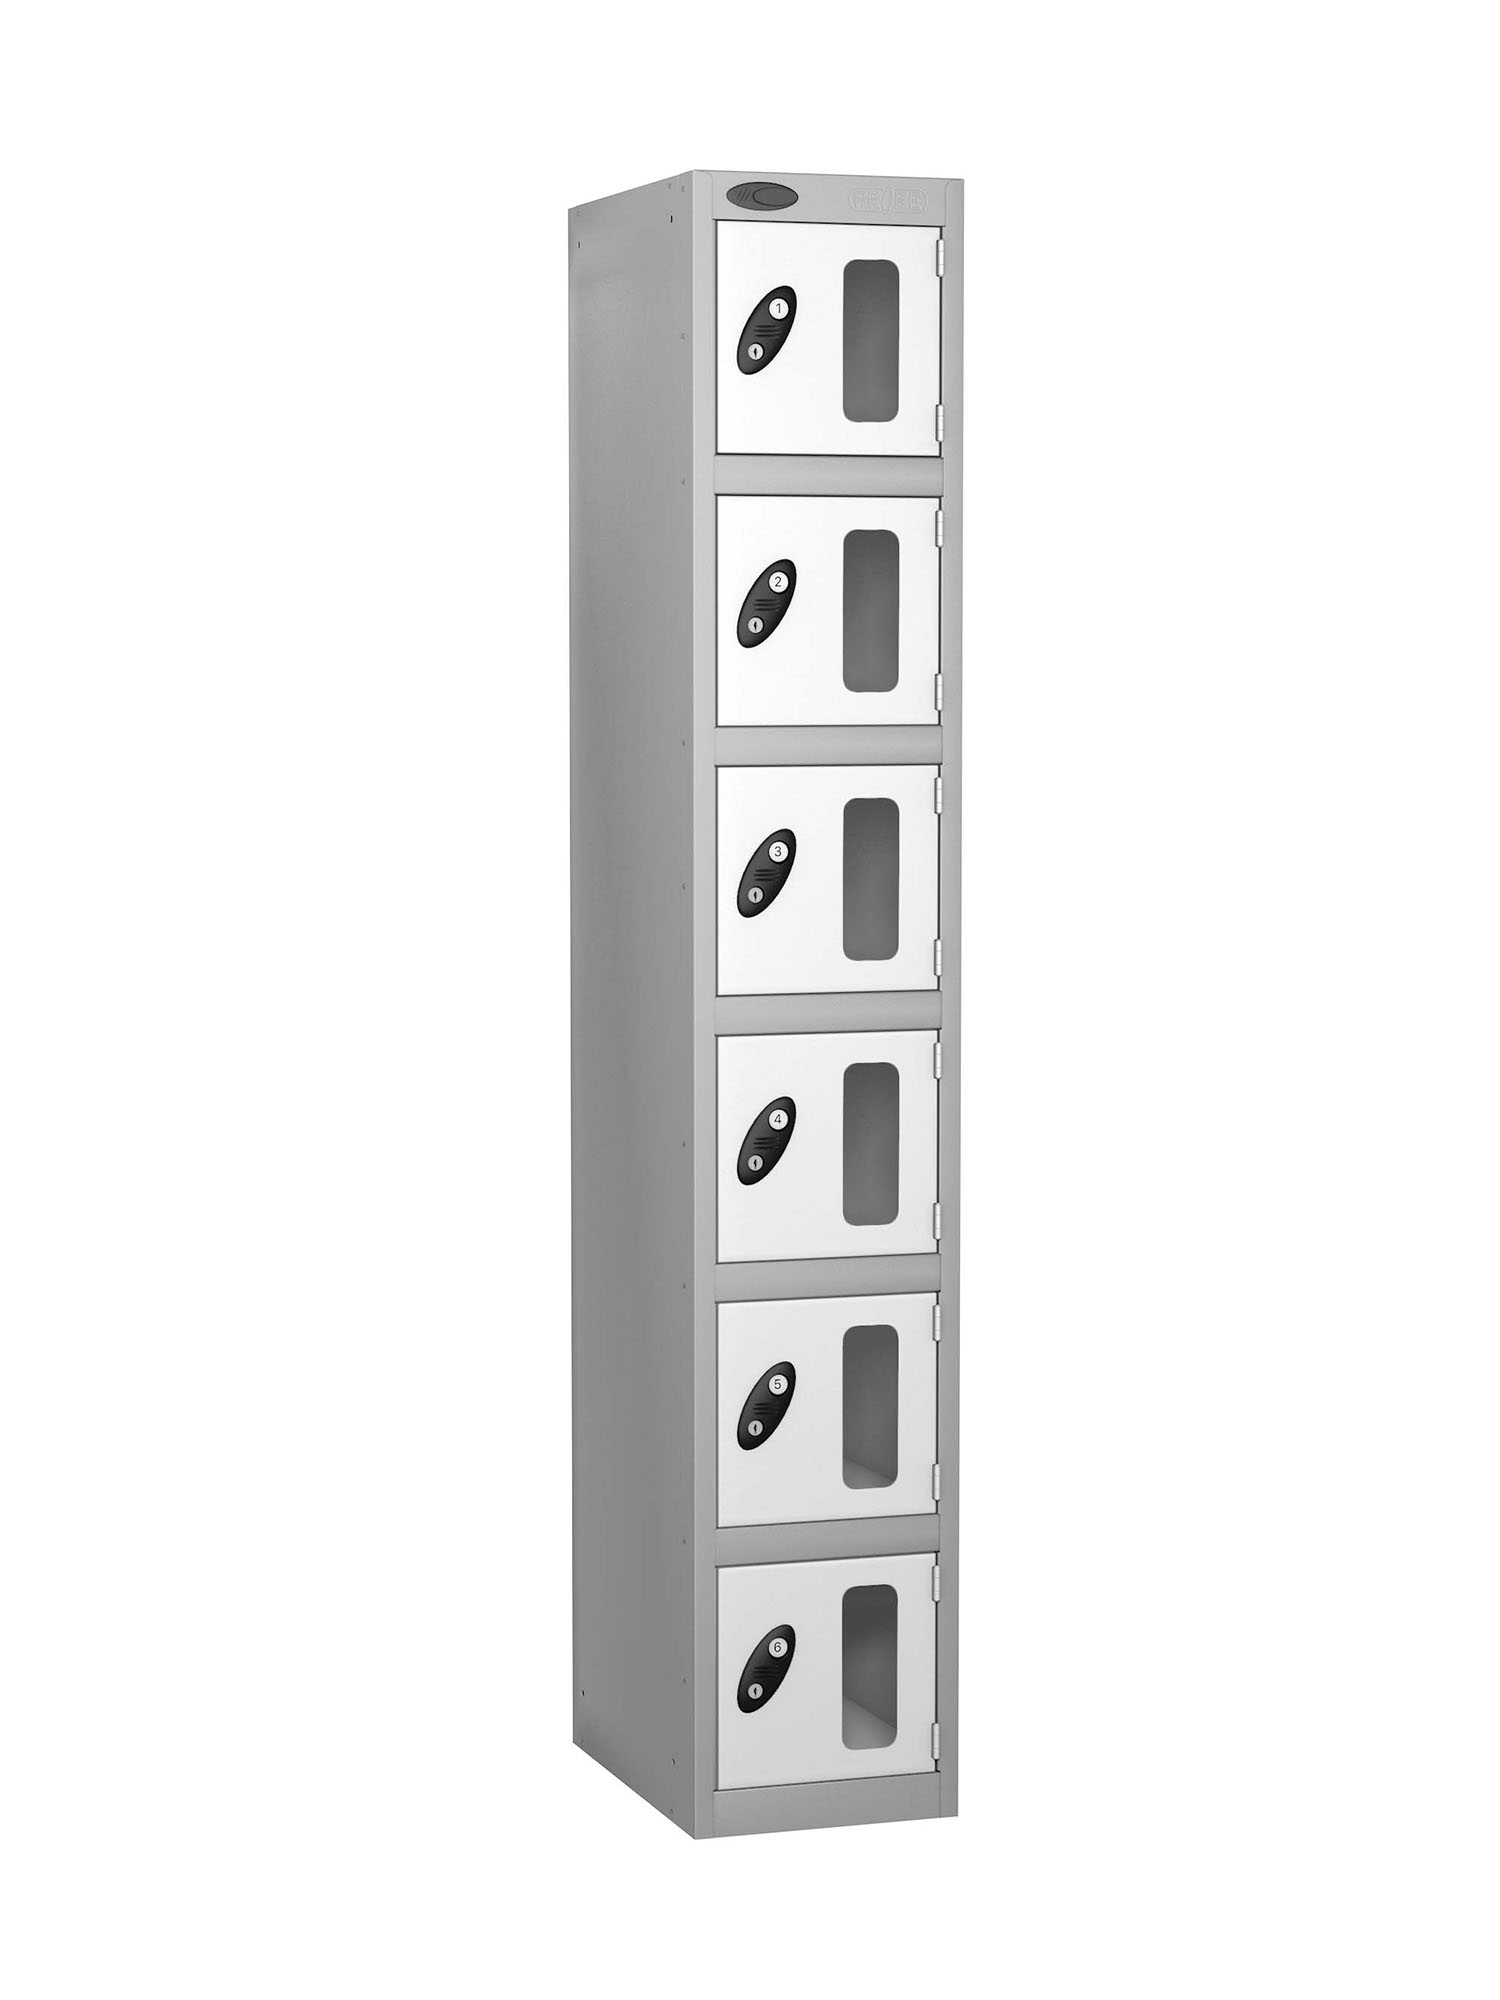 Probe 6 doors vision panel anti-stock theft locker white